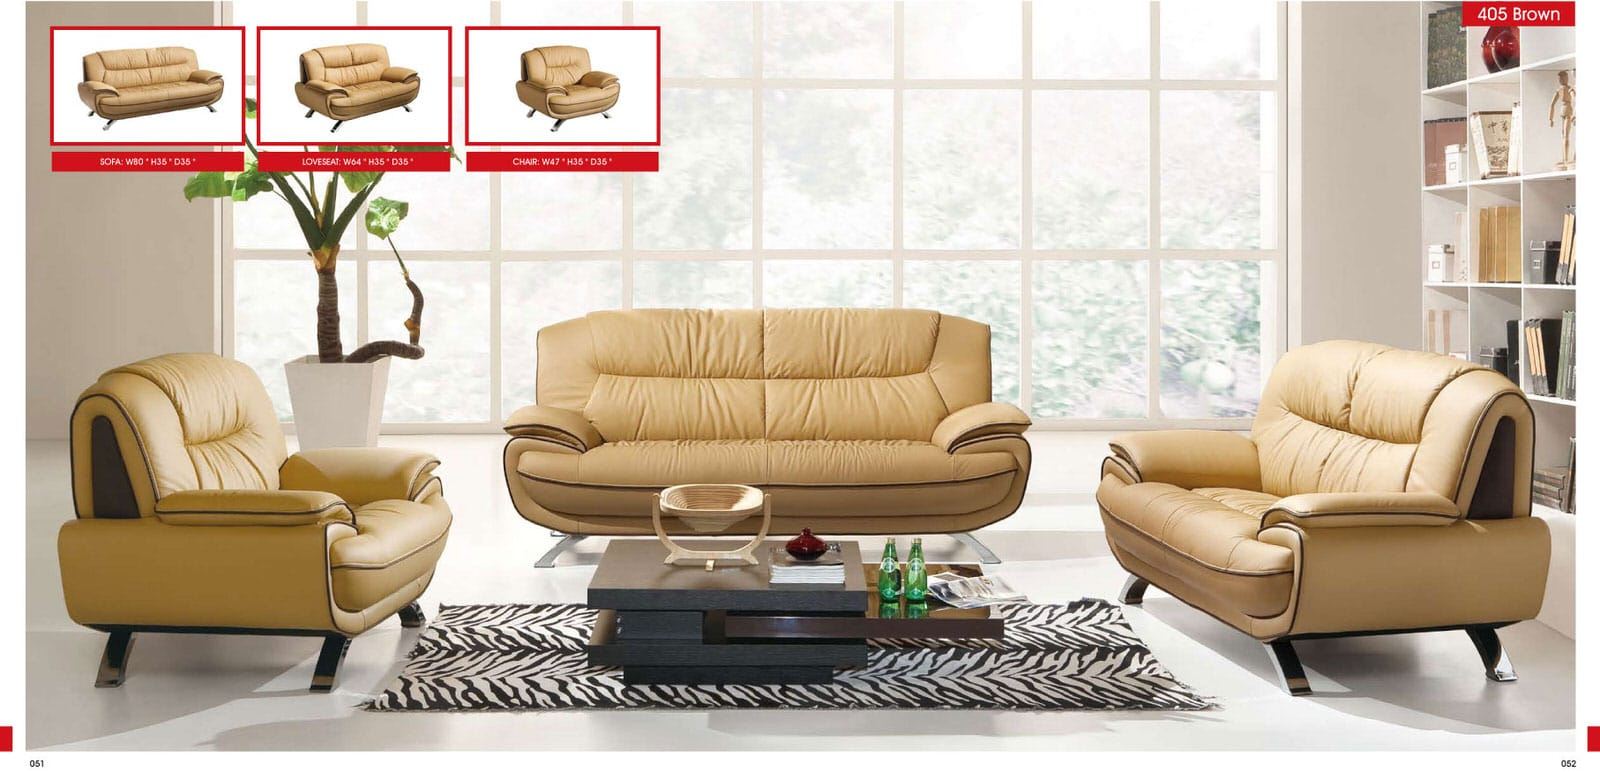 405 brown leather sofa set by esf for Modern room chairs